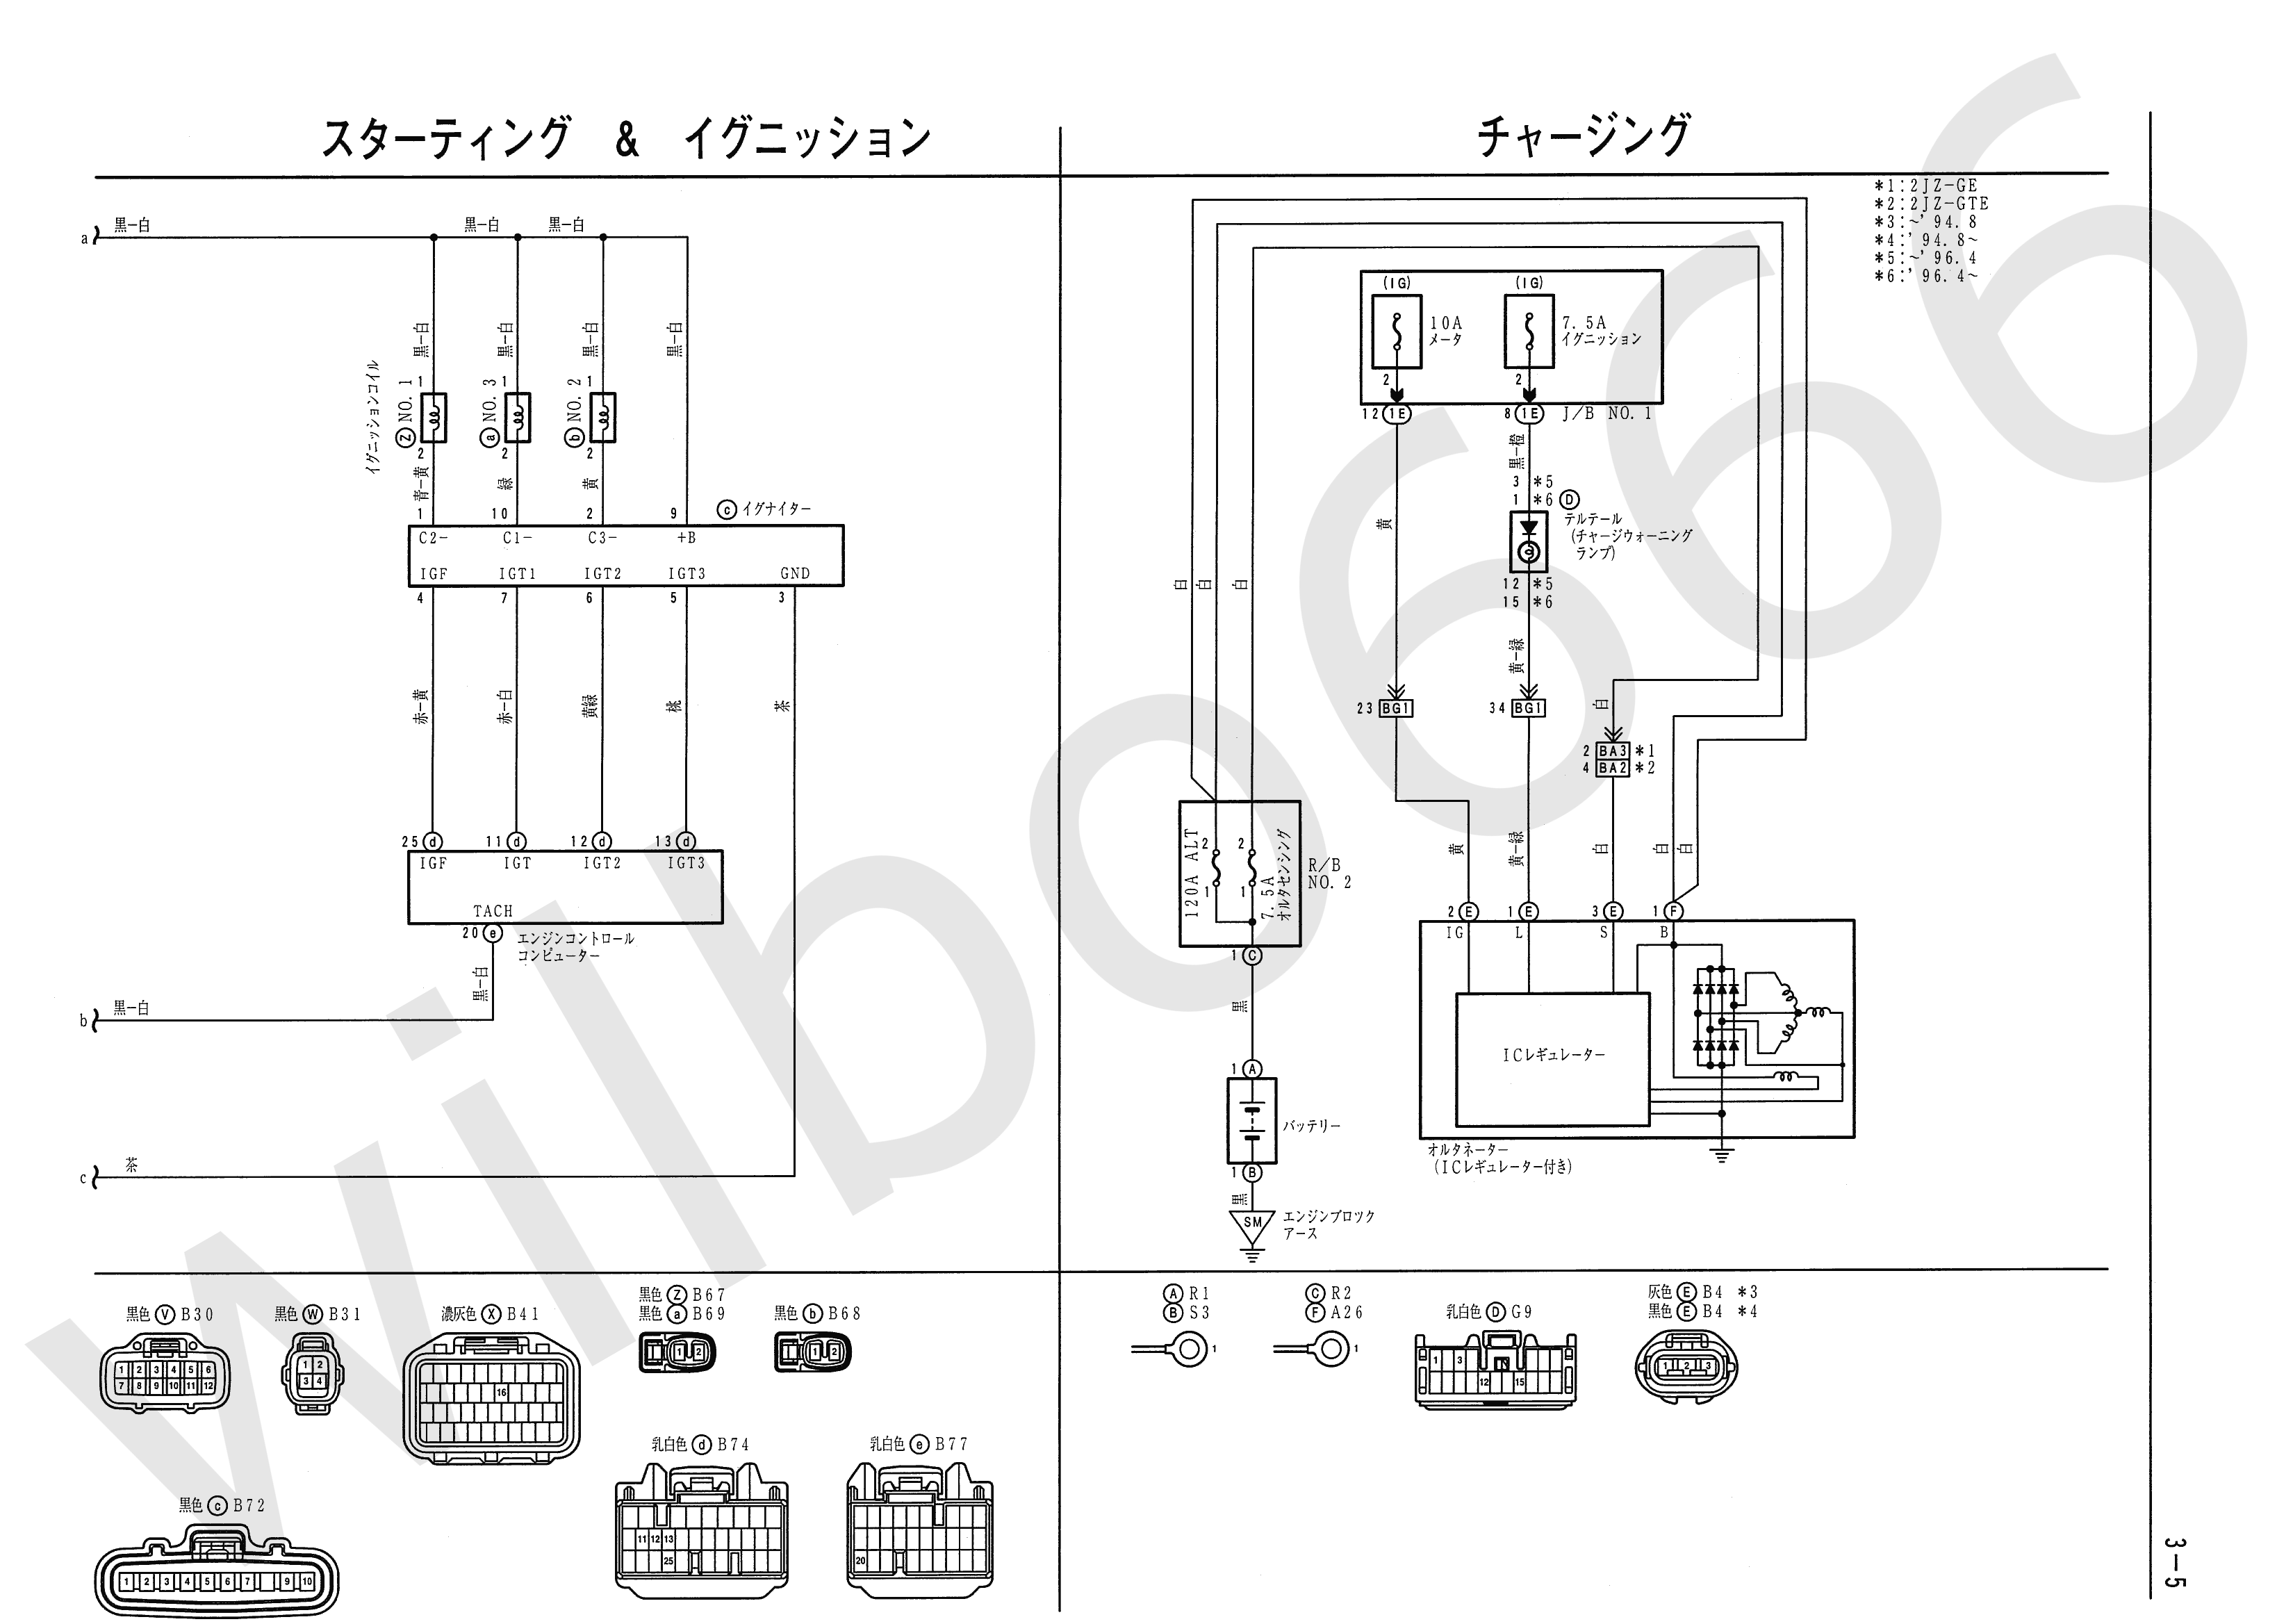 JZA80 Electrical Wiring Diagram 6742505 3 5 wilbo666 2jz gte vvti jza80 supra engine wiring 2jz wiring diagram at gsmportal.co